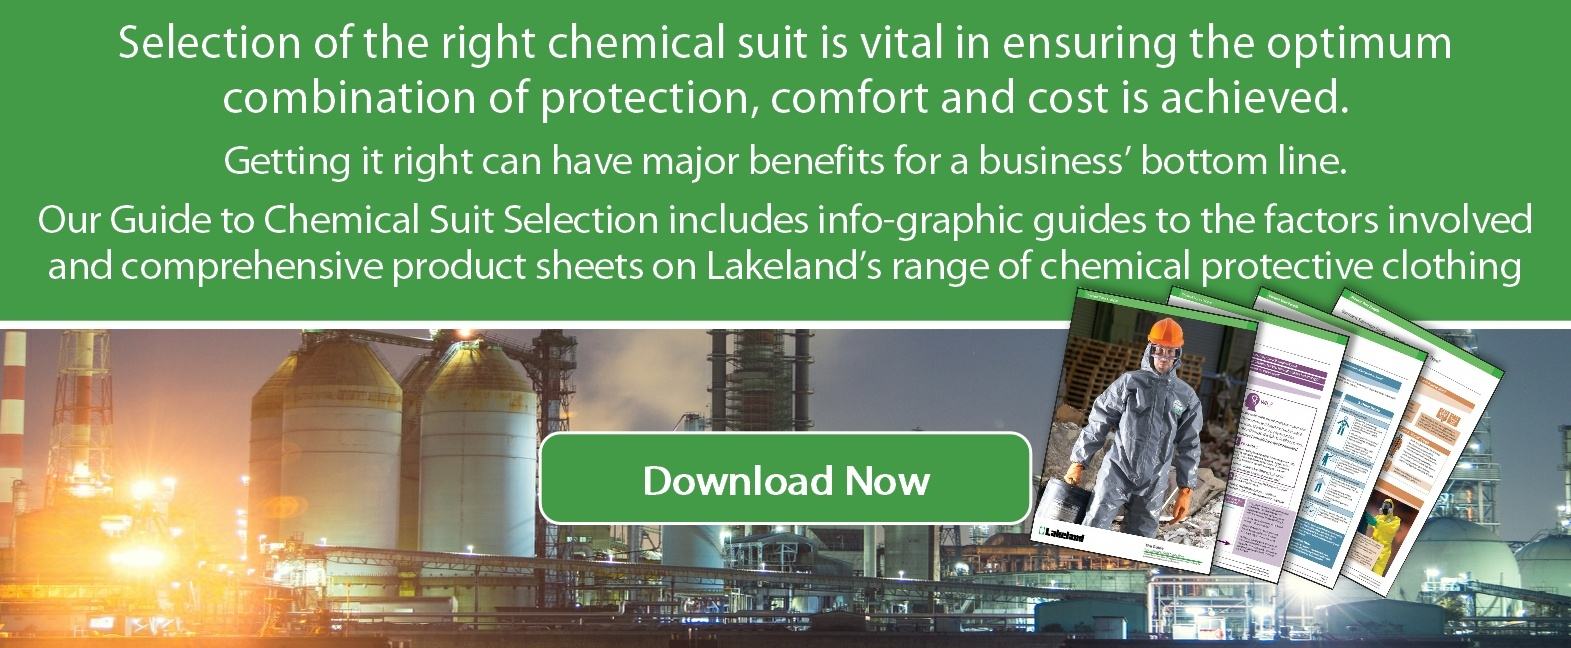 Download Guide to Chemical Suit Selection